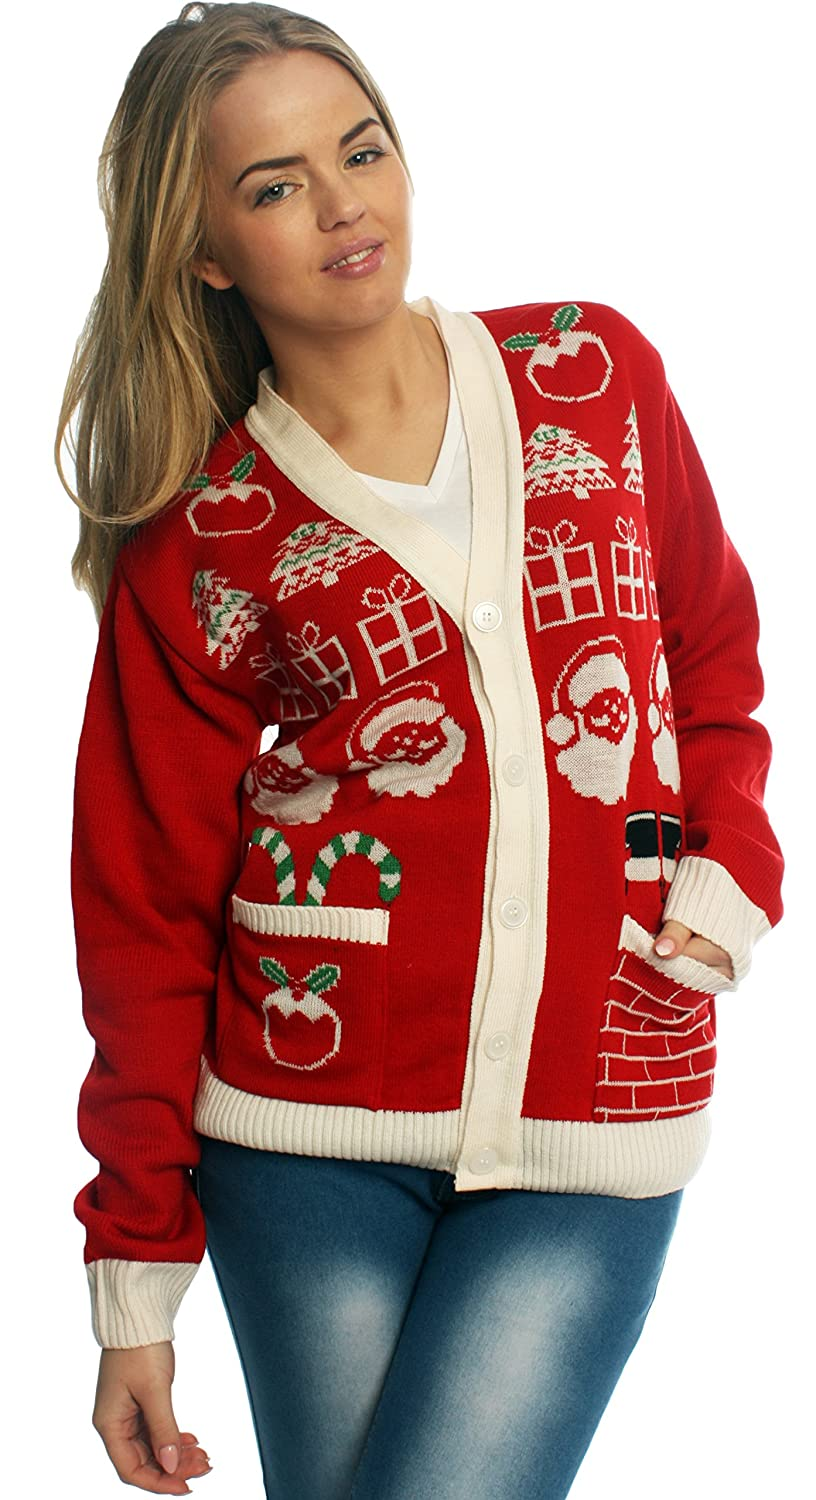 Santa Christmas Jumper Cardigan- Ladies & Mens, Novelty, Red and ...